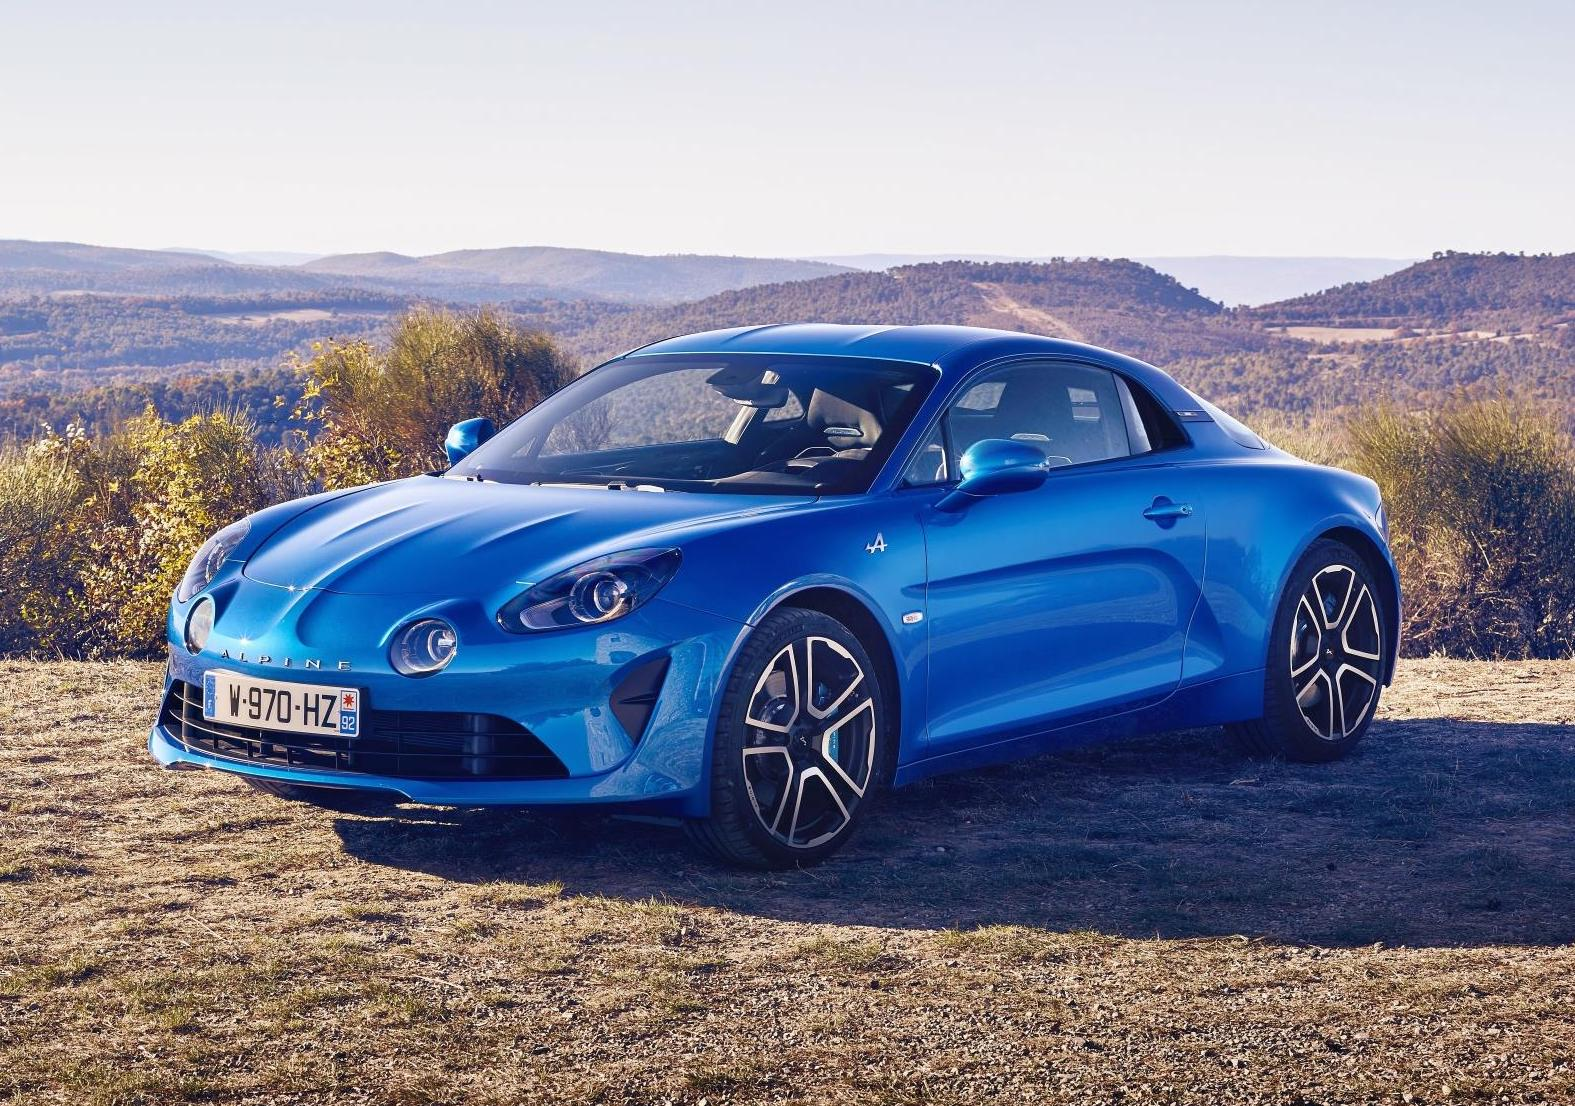 Alpine A110 Arrives In Australia Q4 Prices And Specs Confirmed